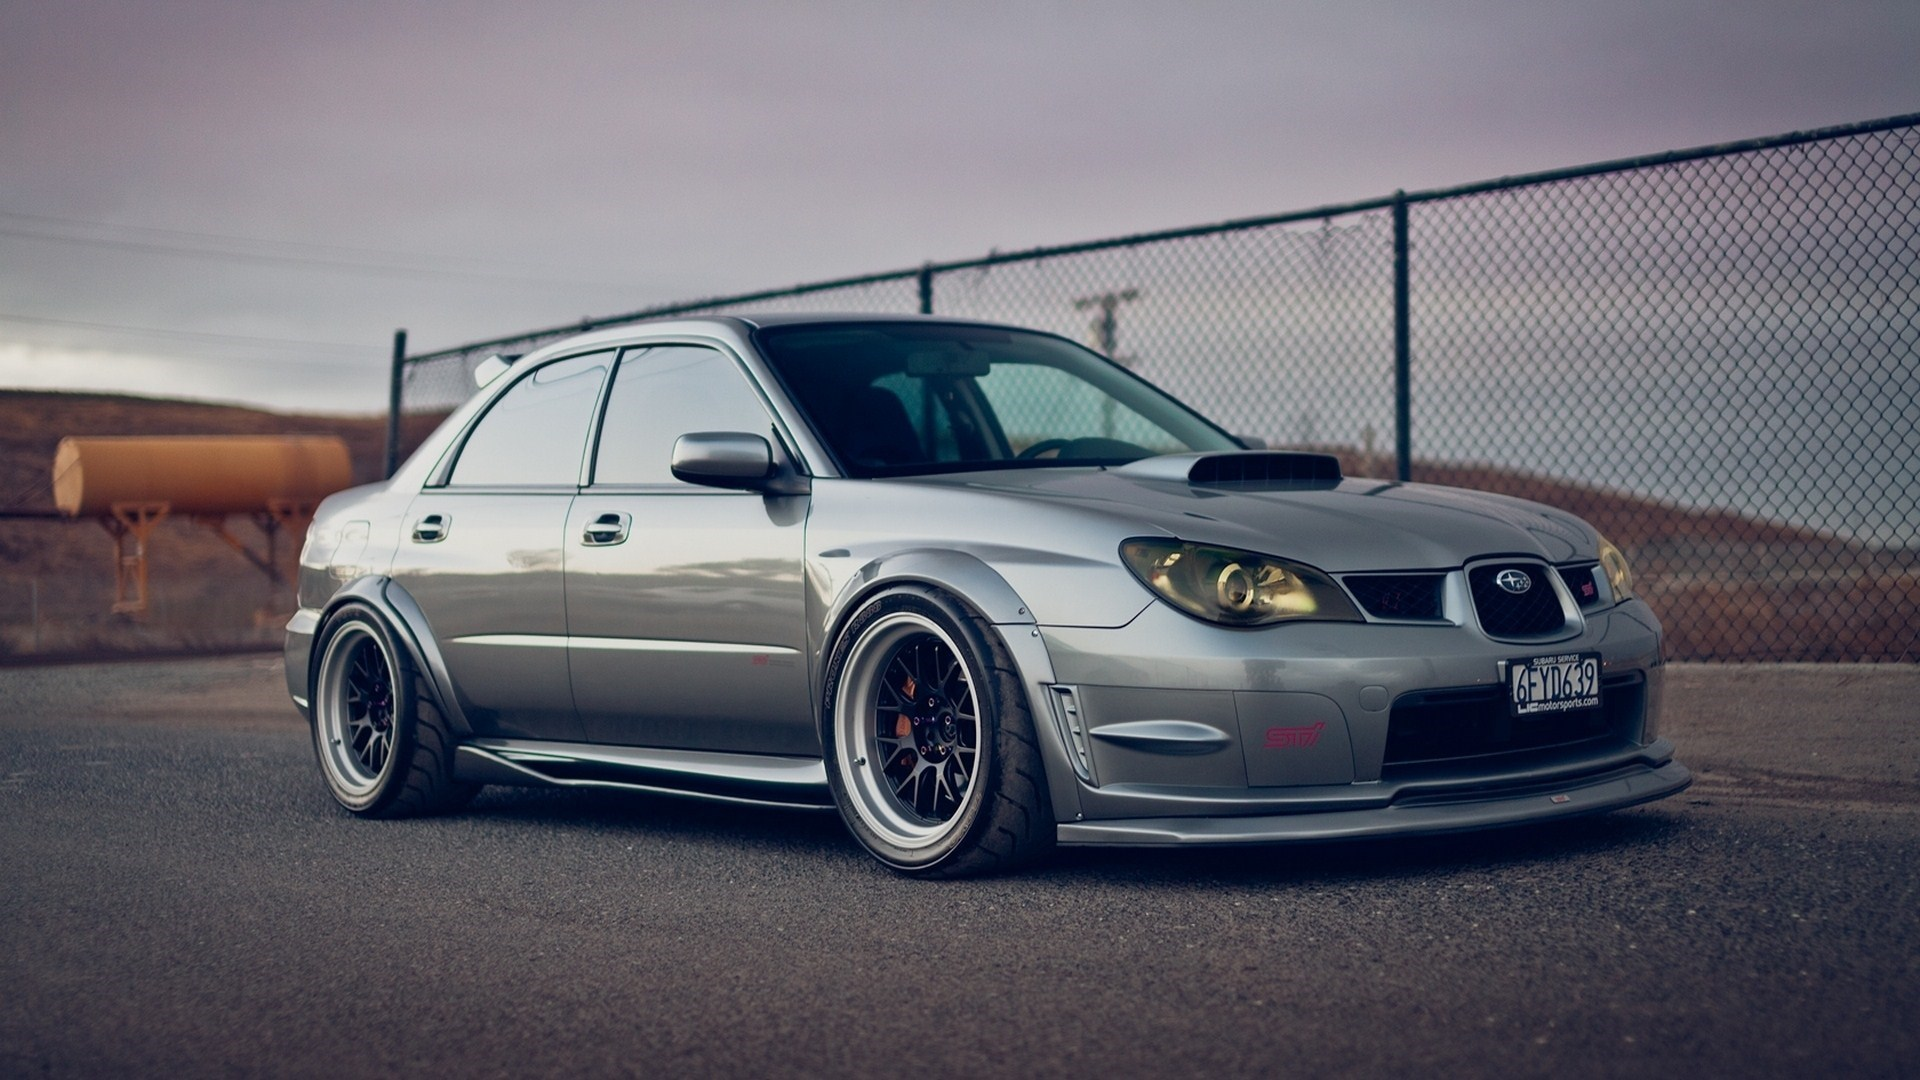 Toyota Altezza Wallpapers